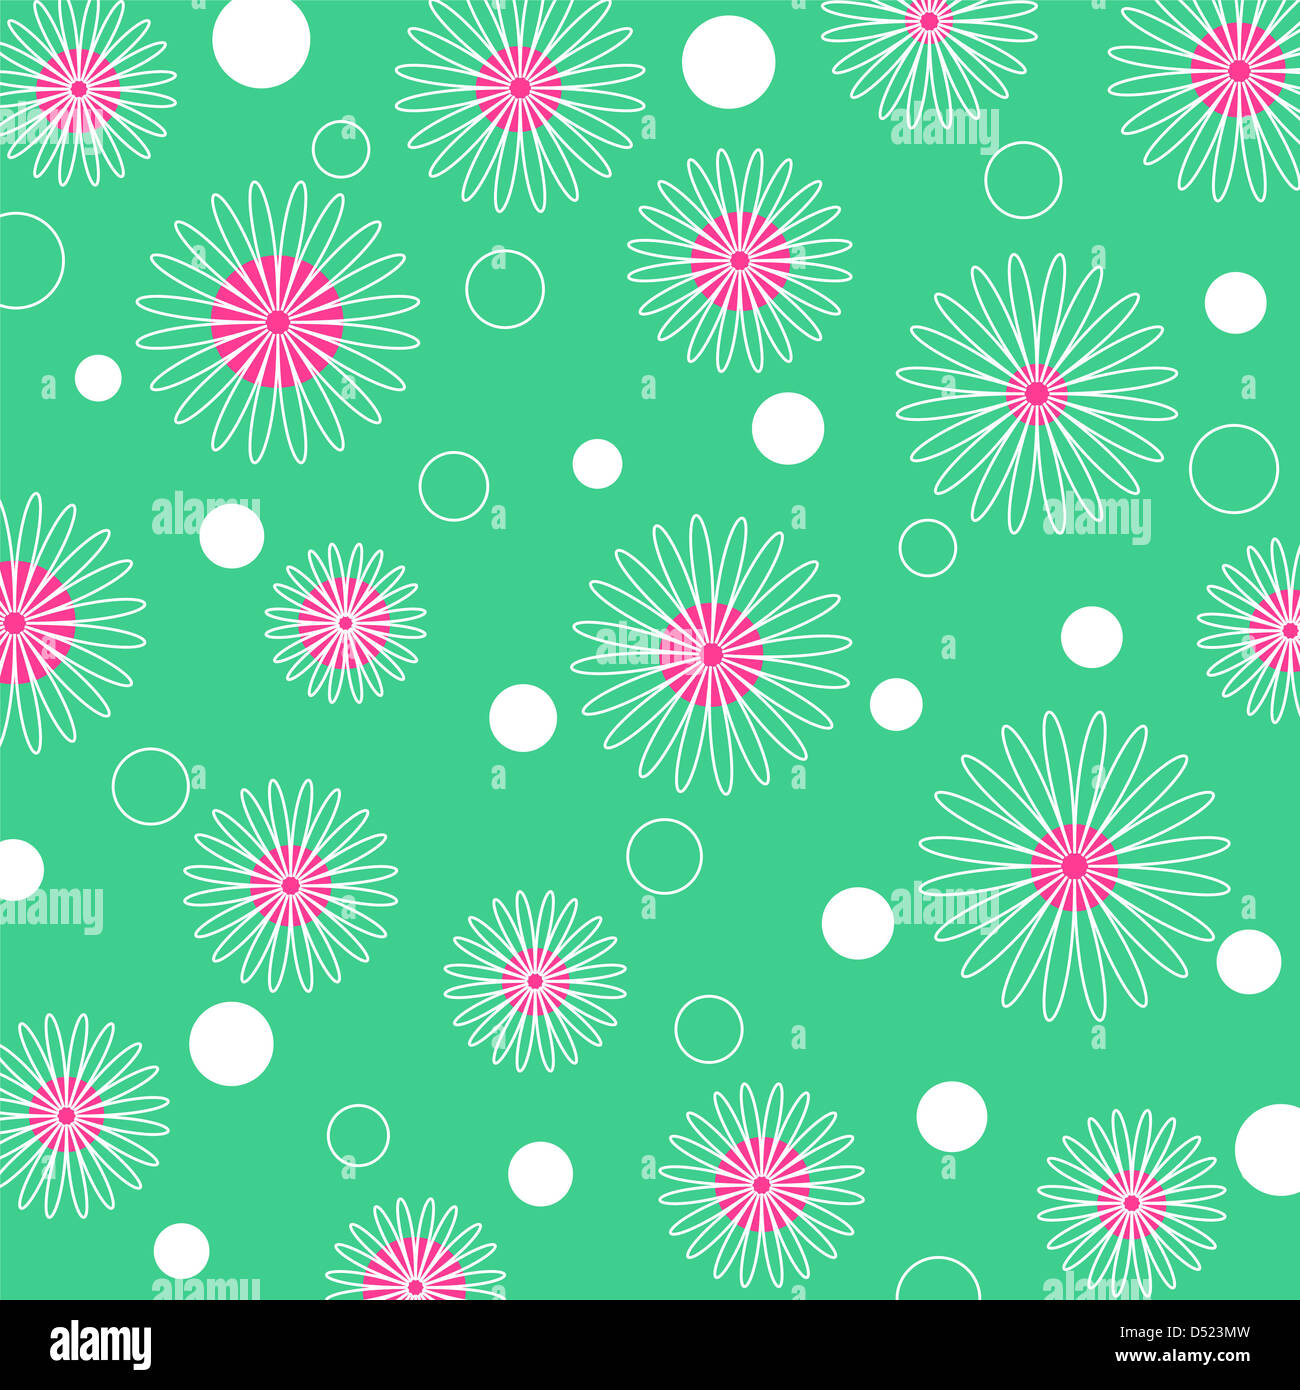 Seamless colorful floral pattern Stock Photo